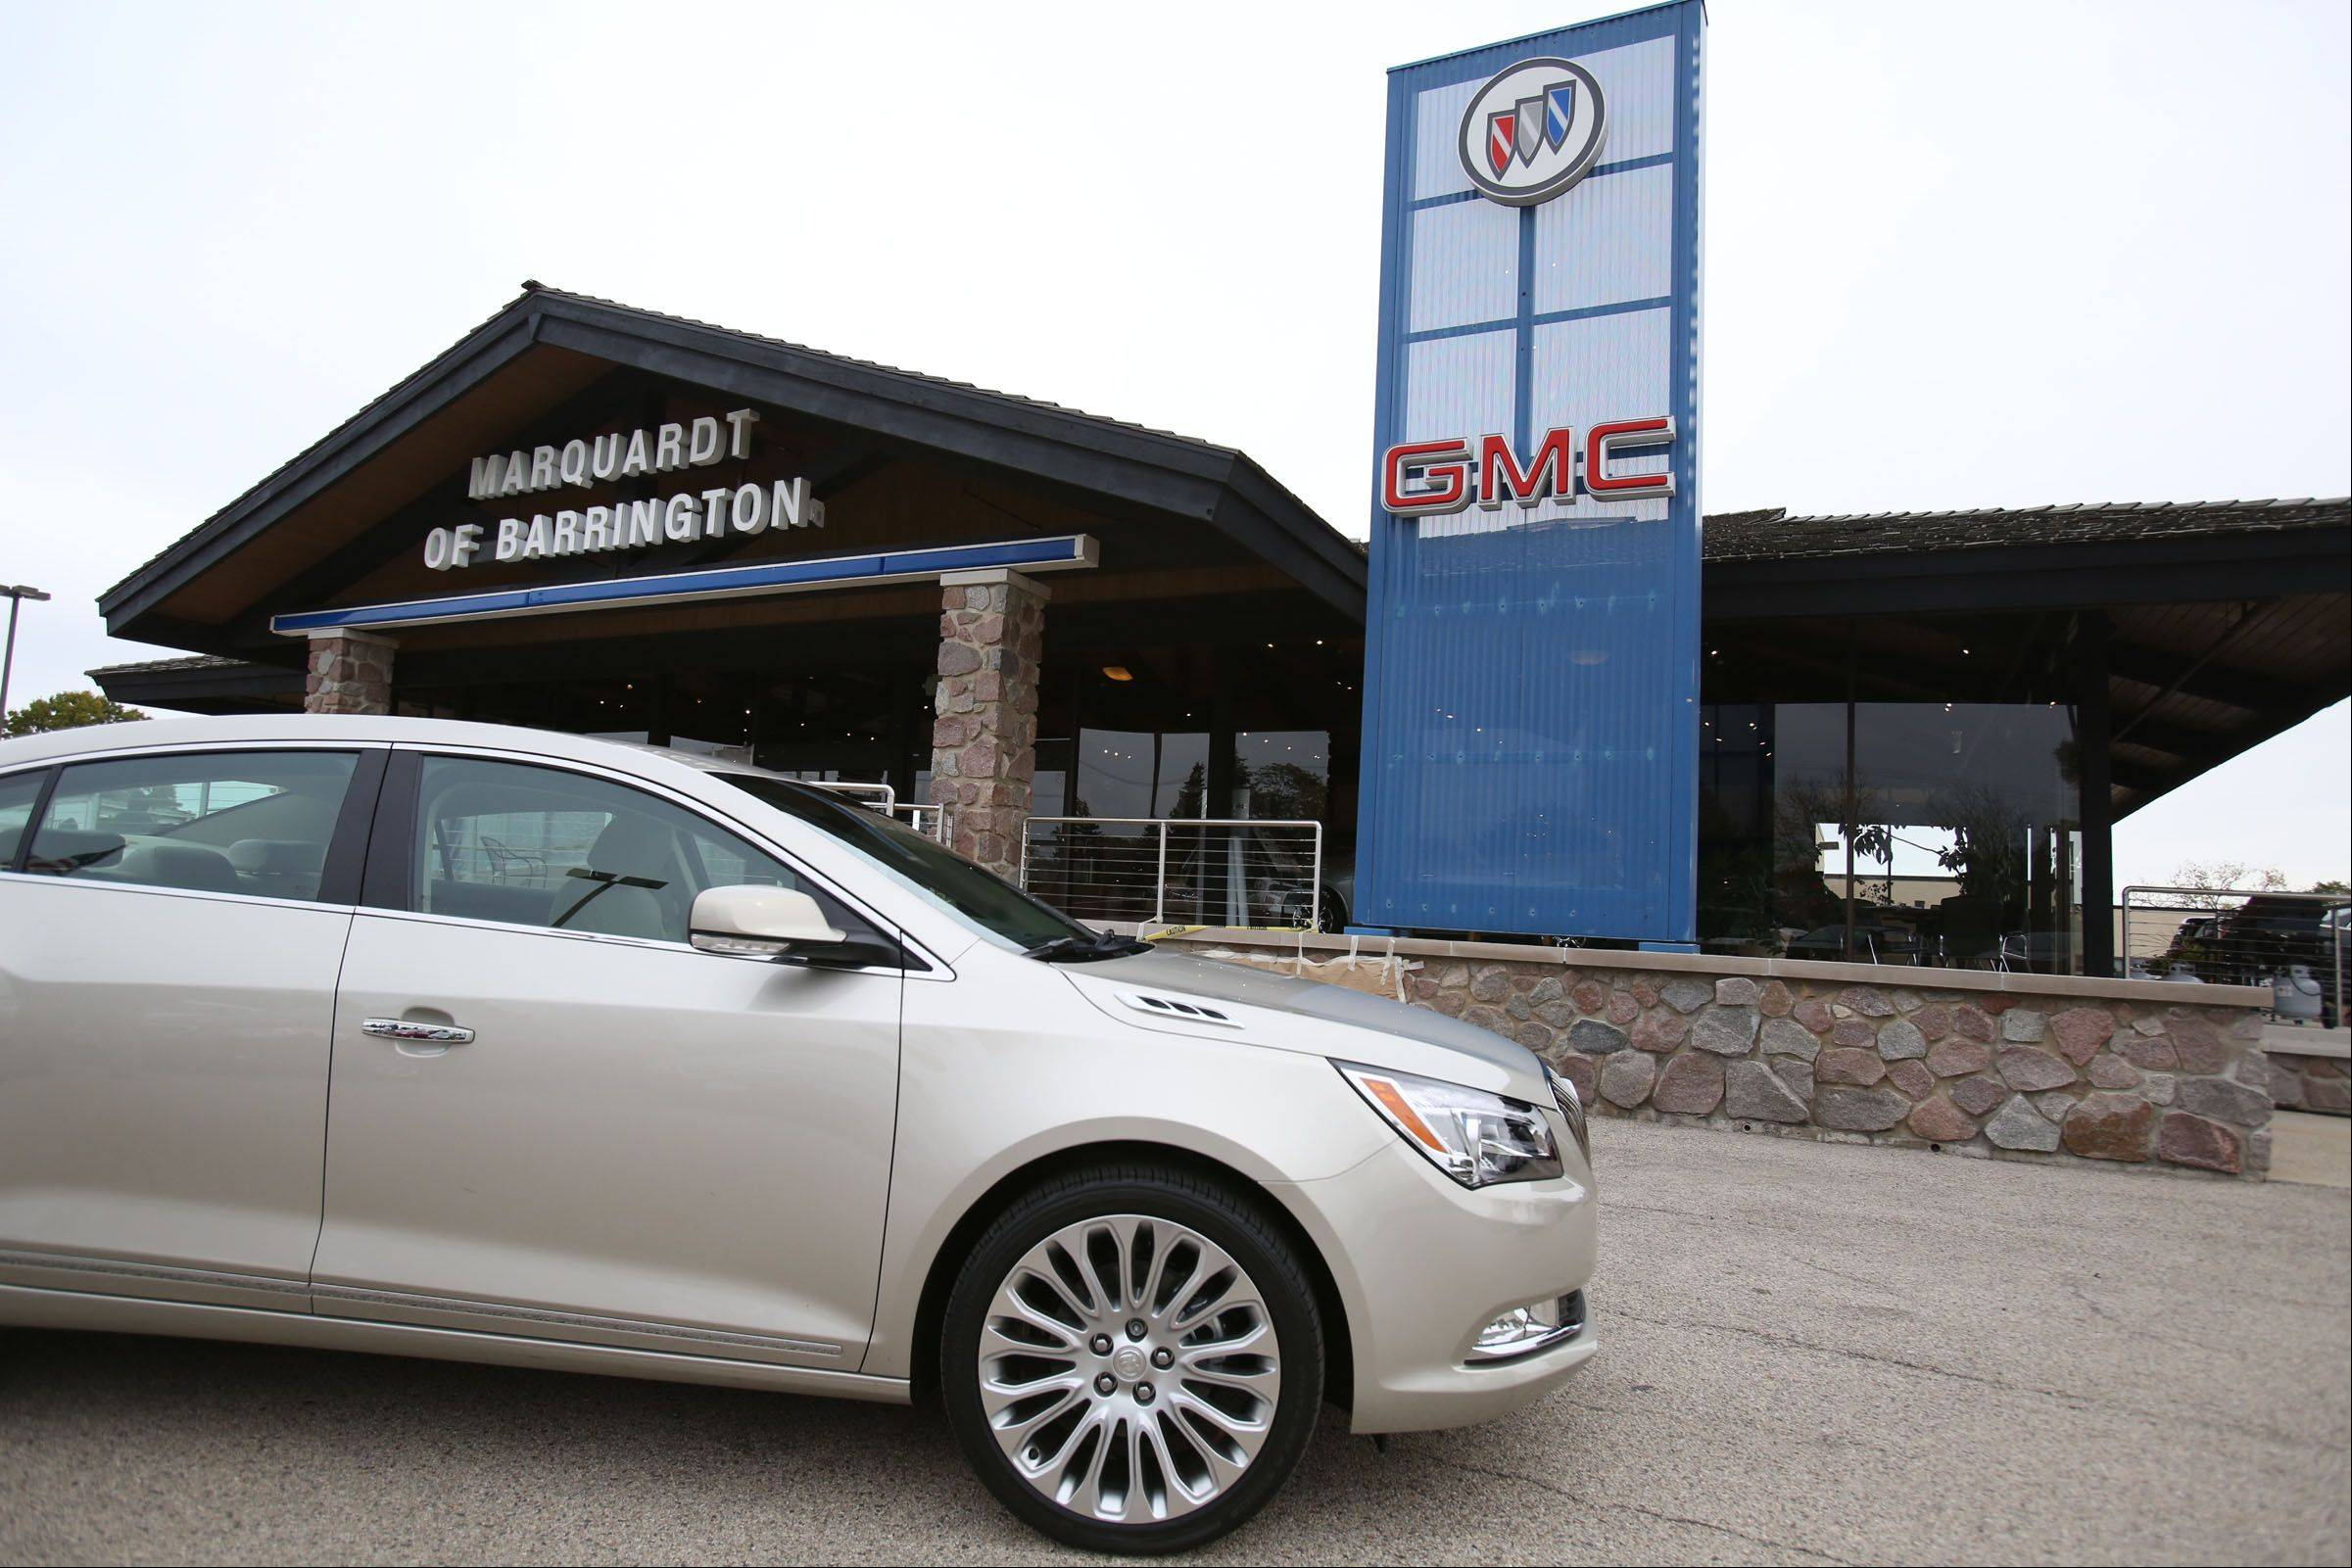 The Buick Lacrosse is one of GMC's redesigned vehicles available at Marquardt of Barrington.